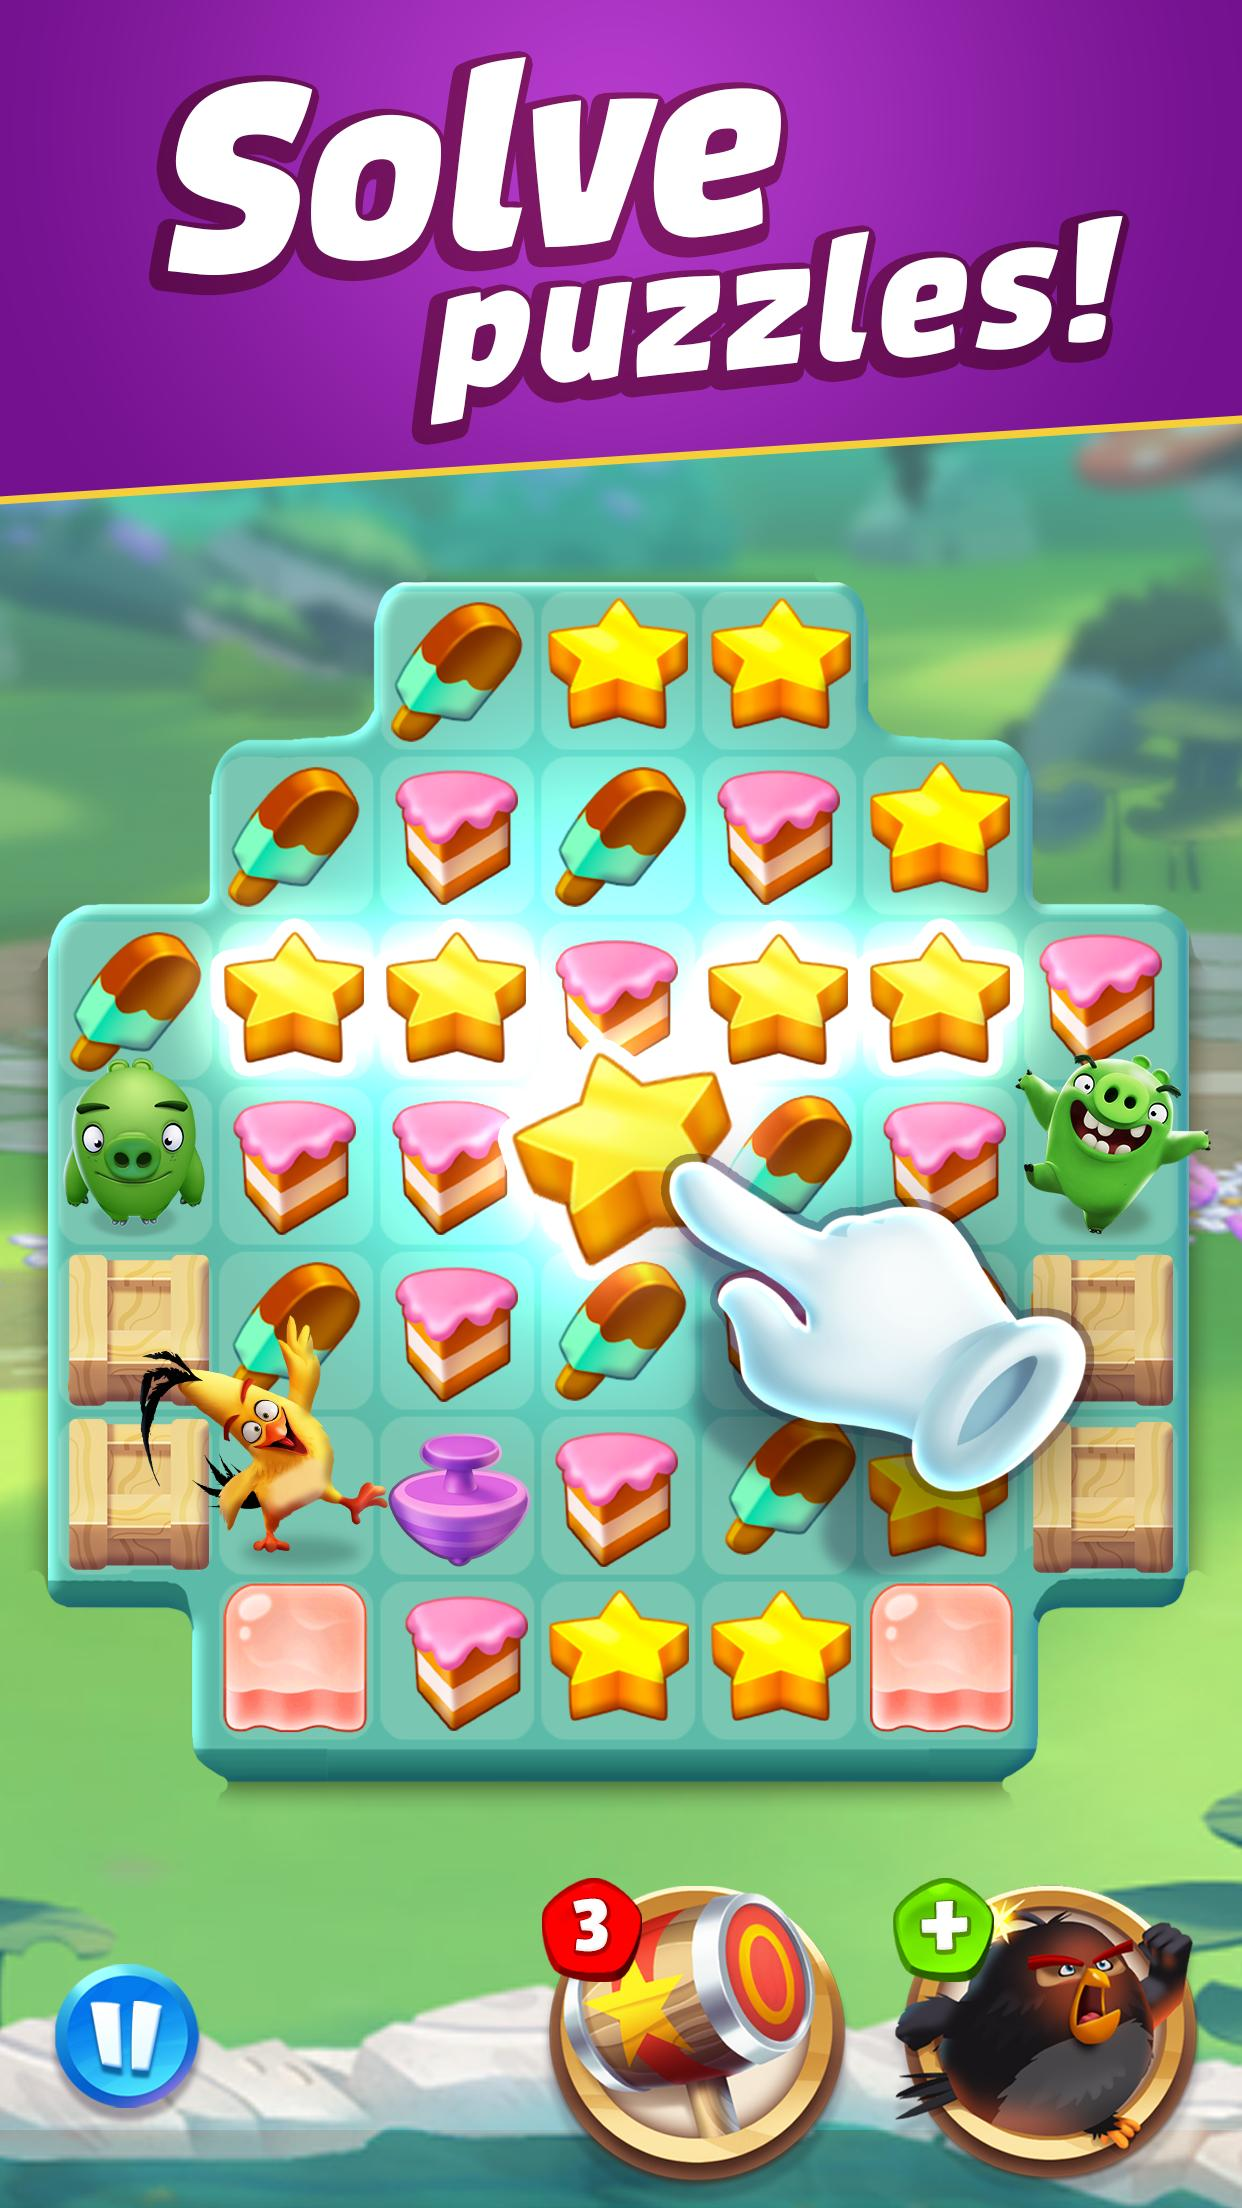 Angry Birds Match 3 3.1.0 Screenshot 18